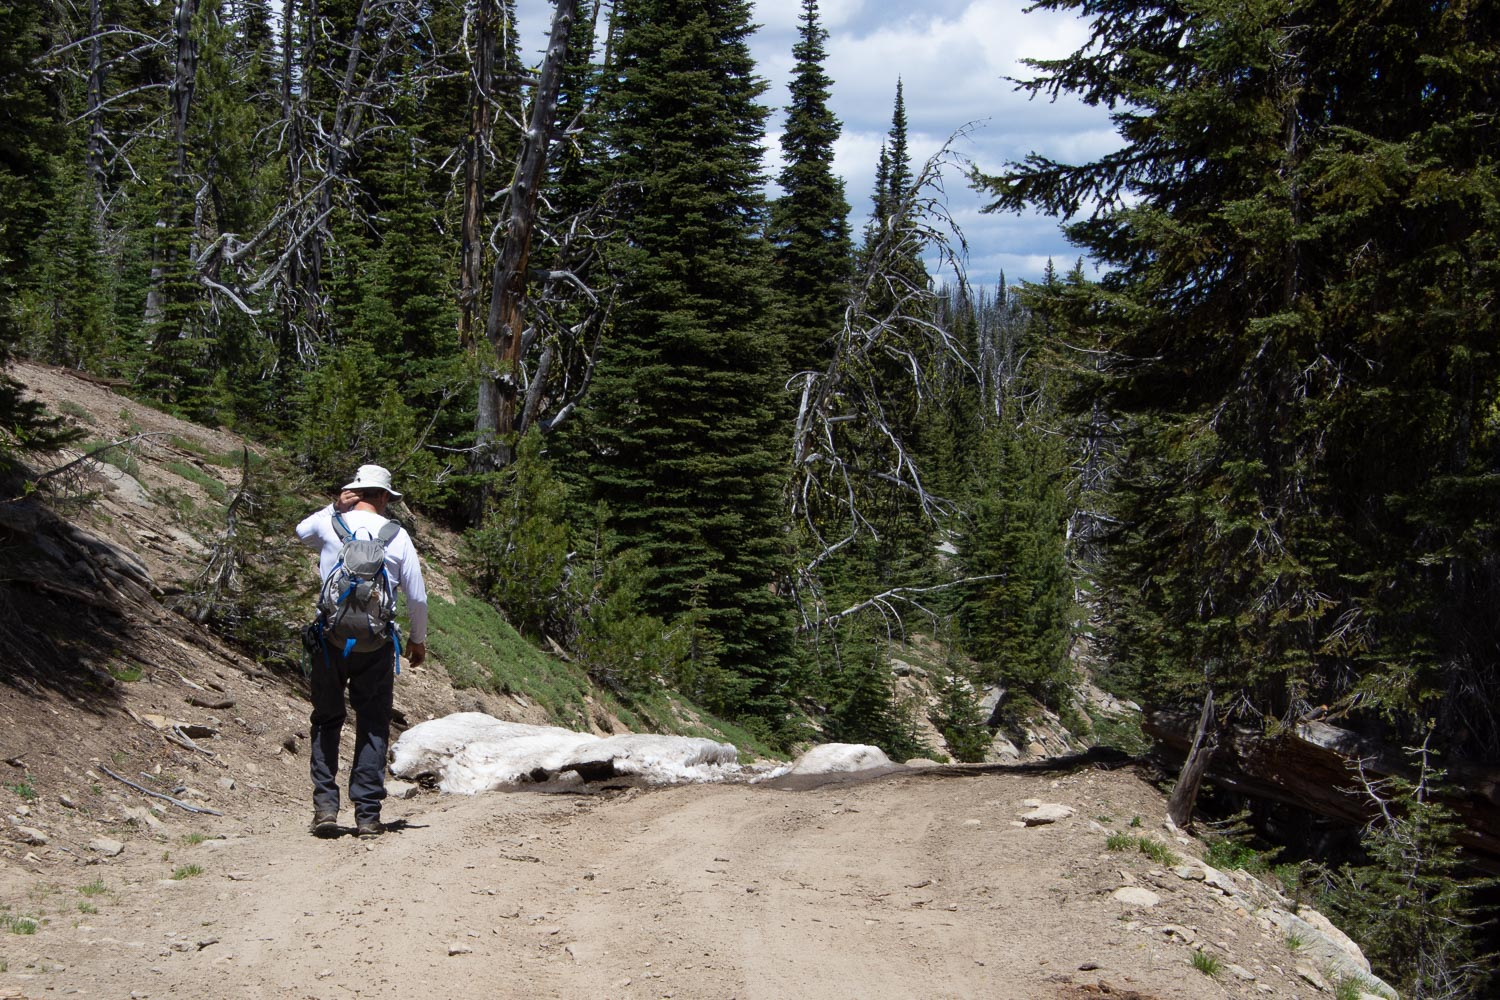 Hiking in Payette National Forest, Idaho.